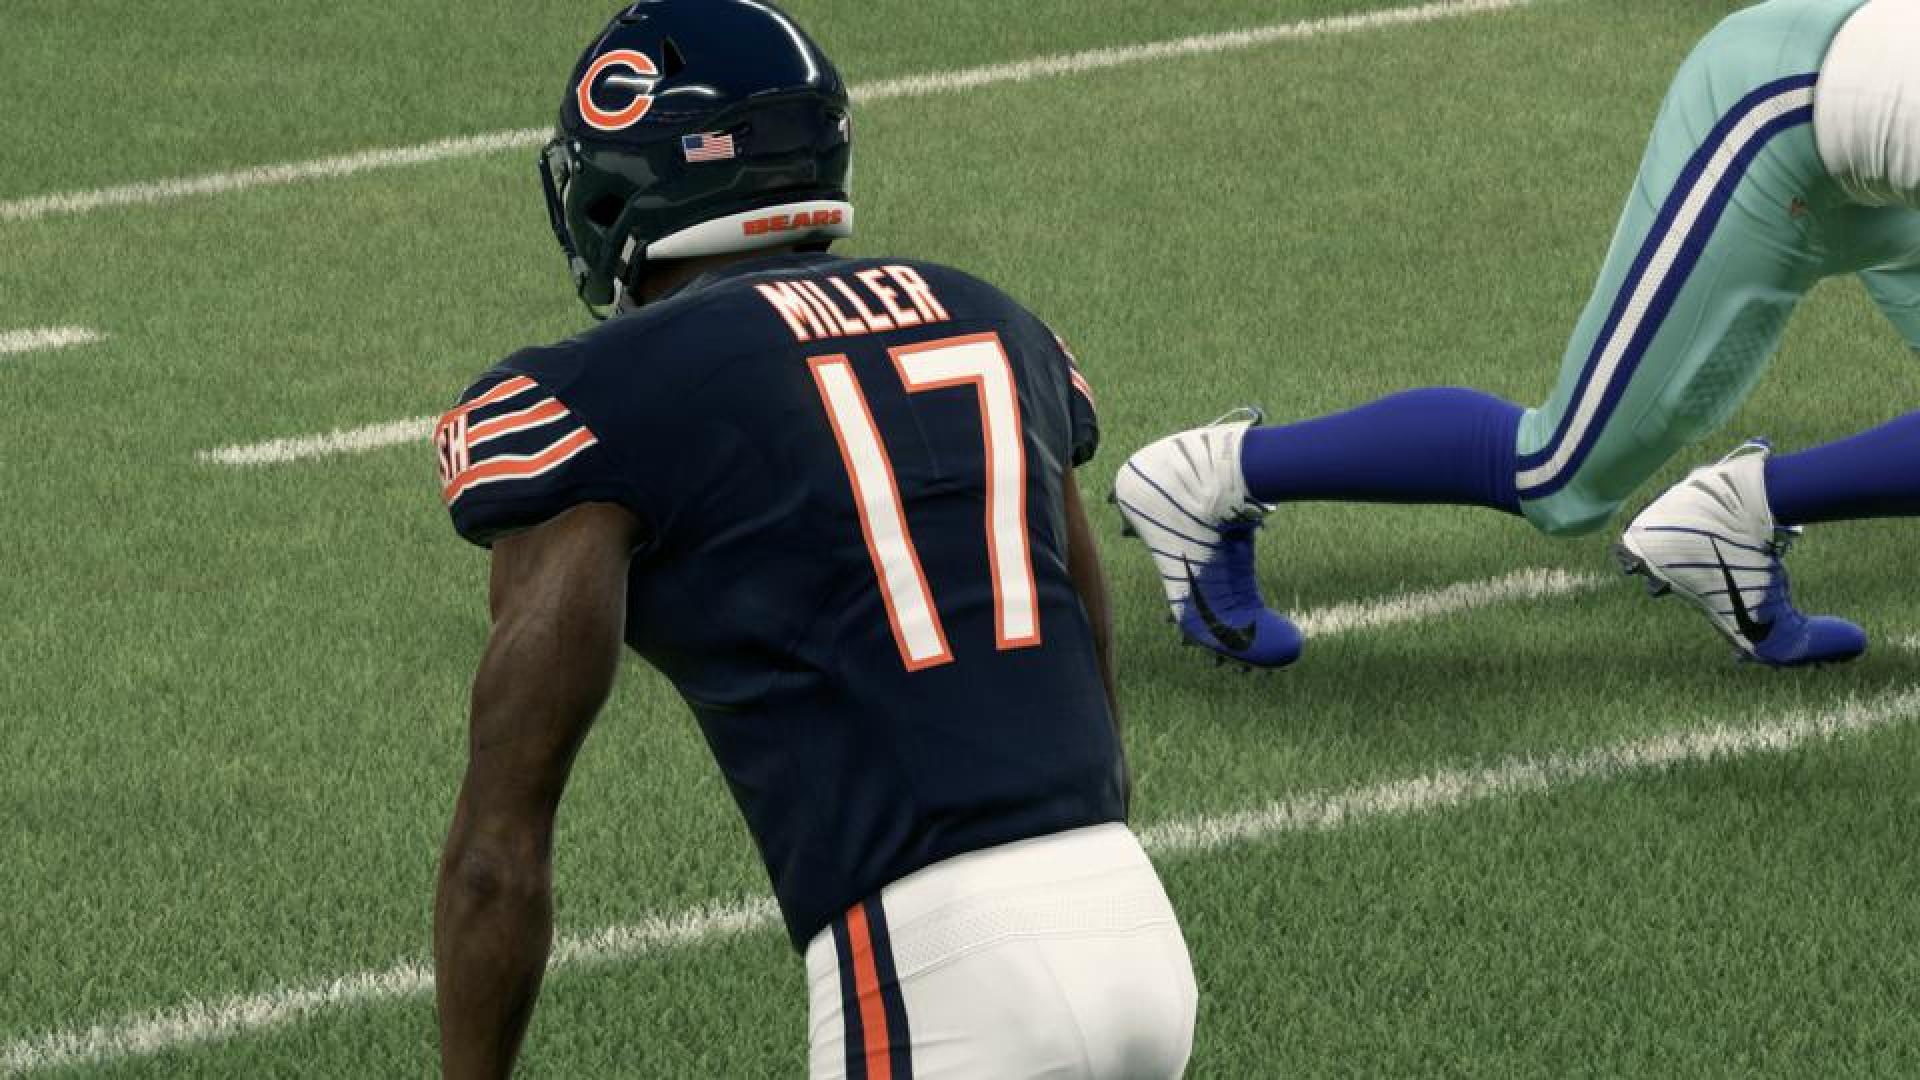 960x0 - Bears' Anthony Miller And Cowboys' Dak Prescott Going In Opposite Directions